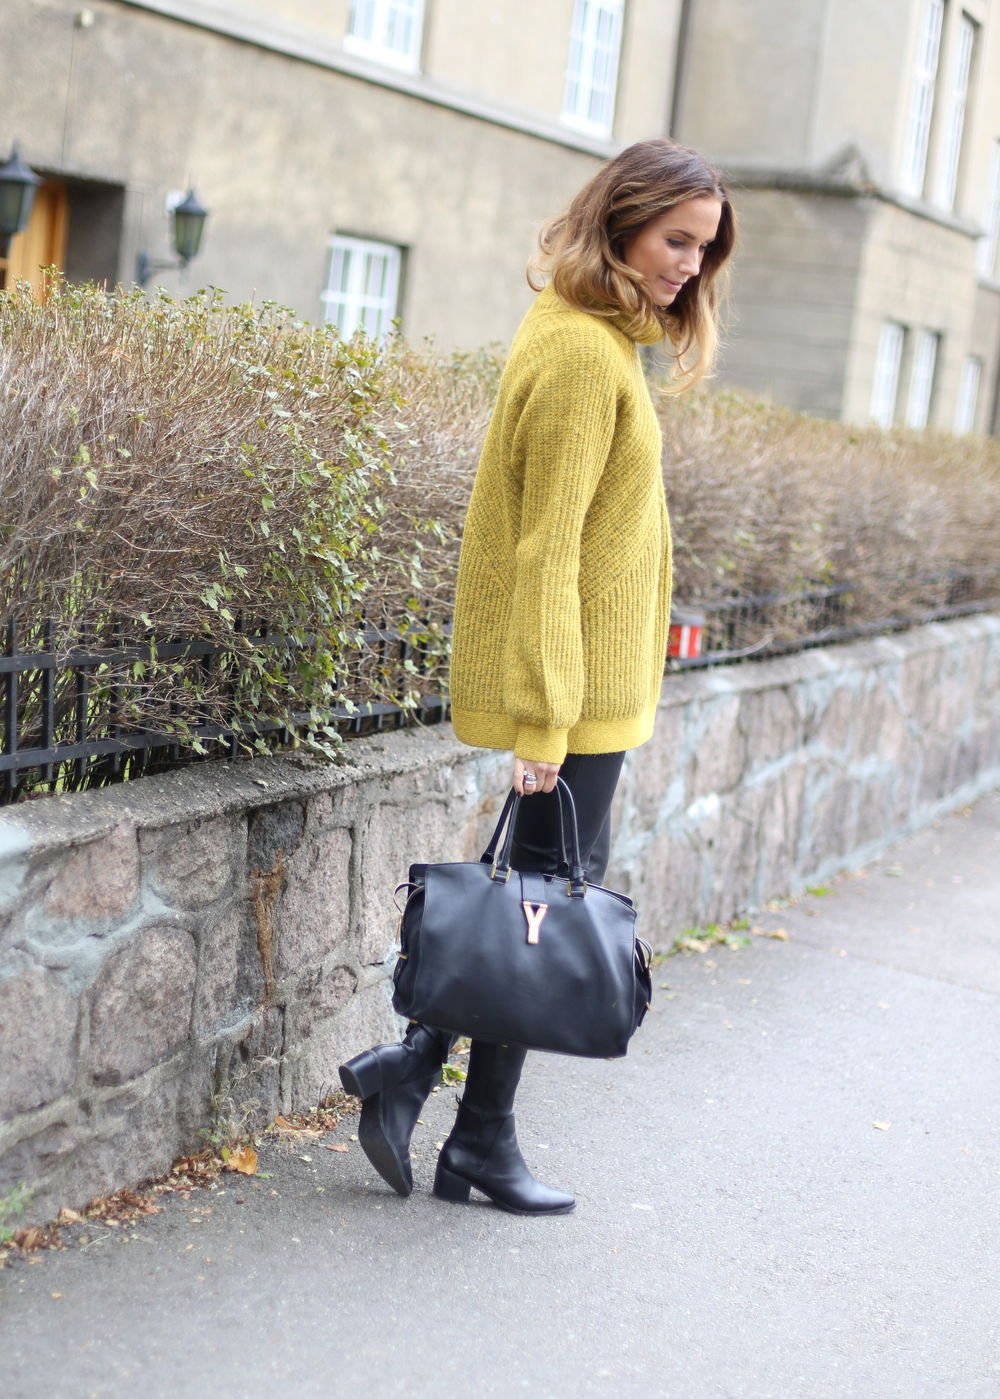 Benedichte wears cute mustard sweater with skinny black jeans and ankle boots; the perfect fall look! Jumper: Genser, Bag: Saint Laurent, Boots: Model's Own.